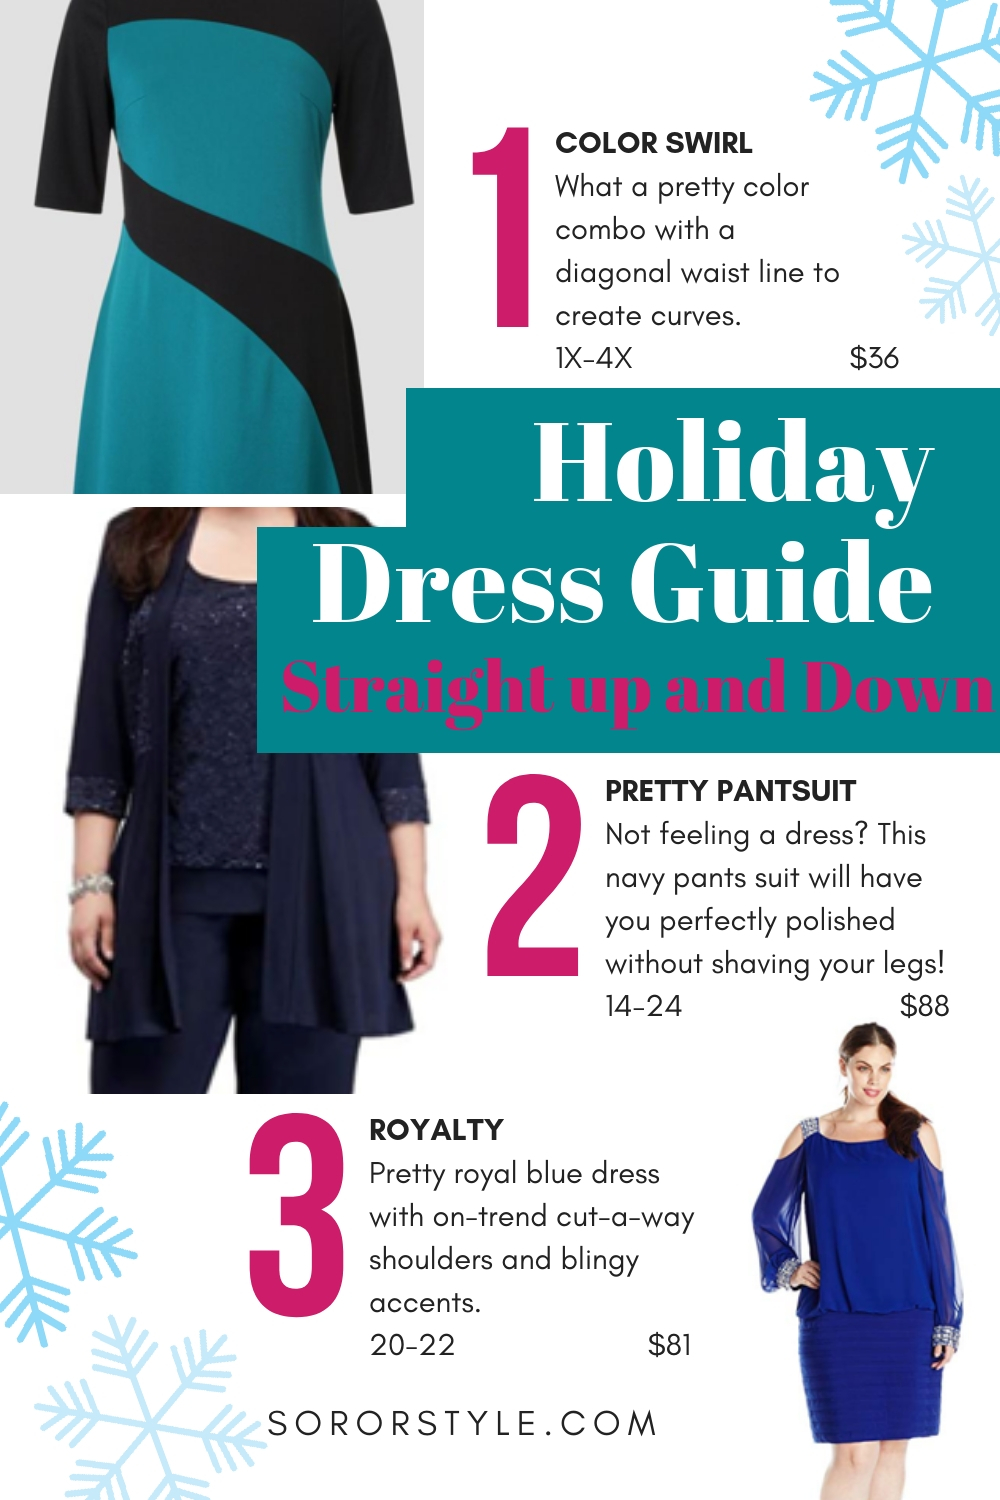 holidaydressesforplussizenocurves.jpg